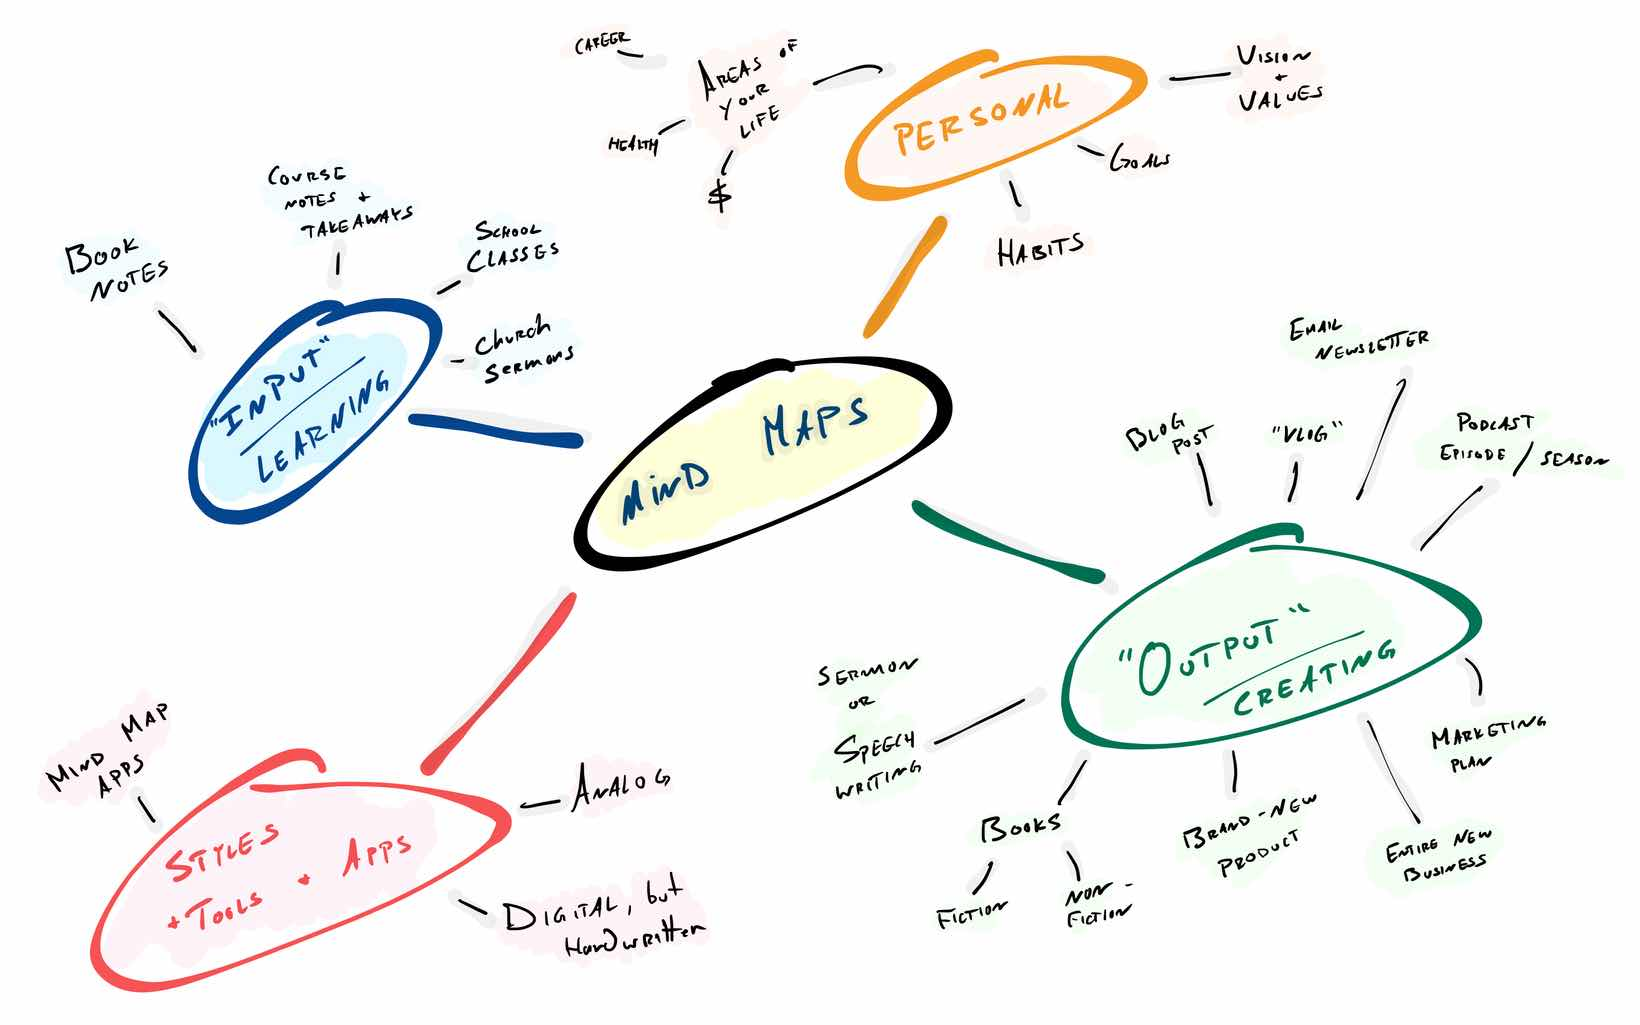 The various uses of Mind Maps